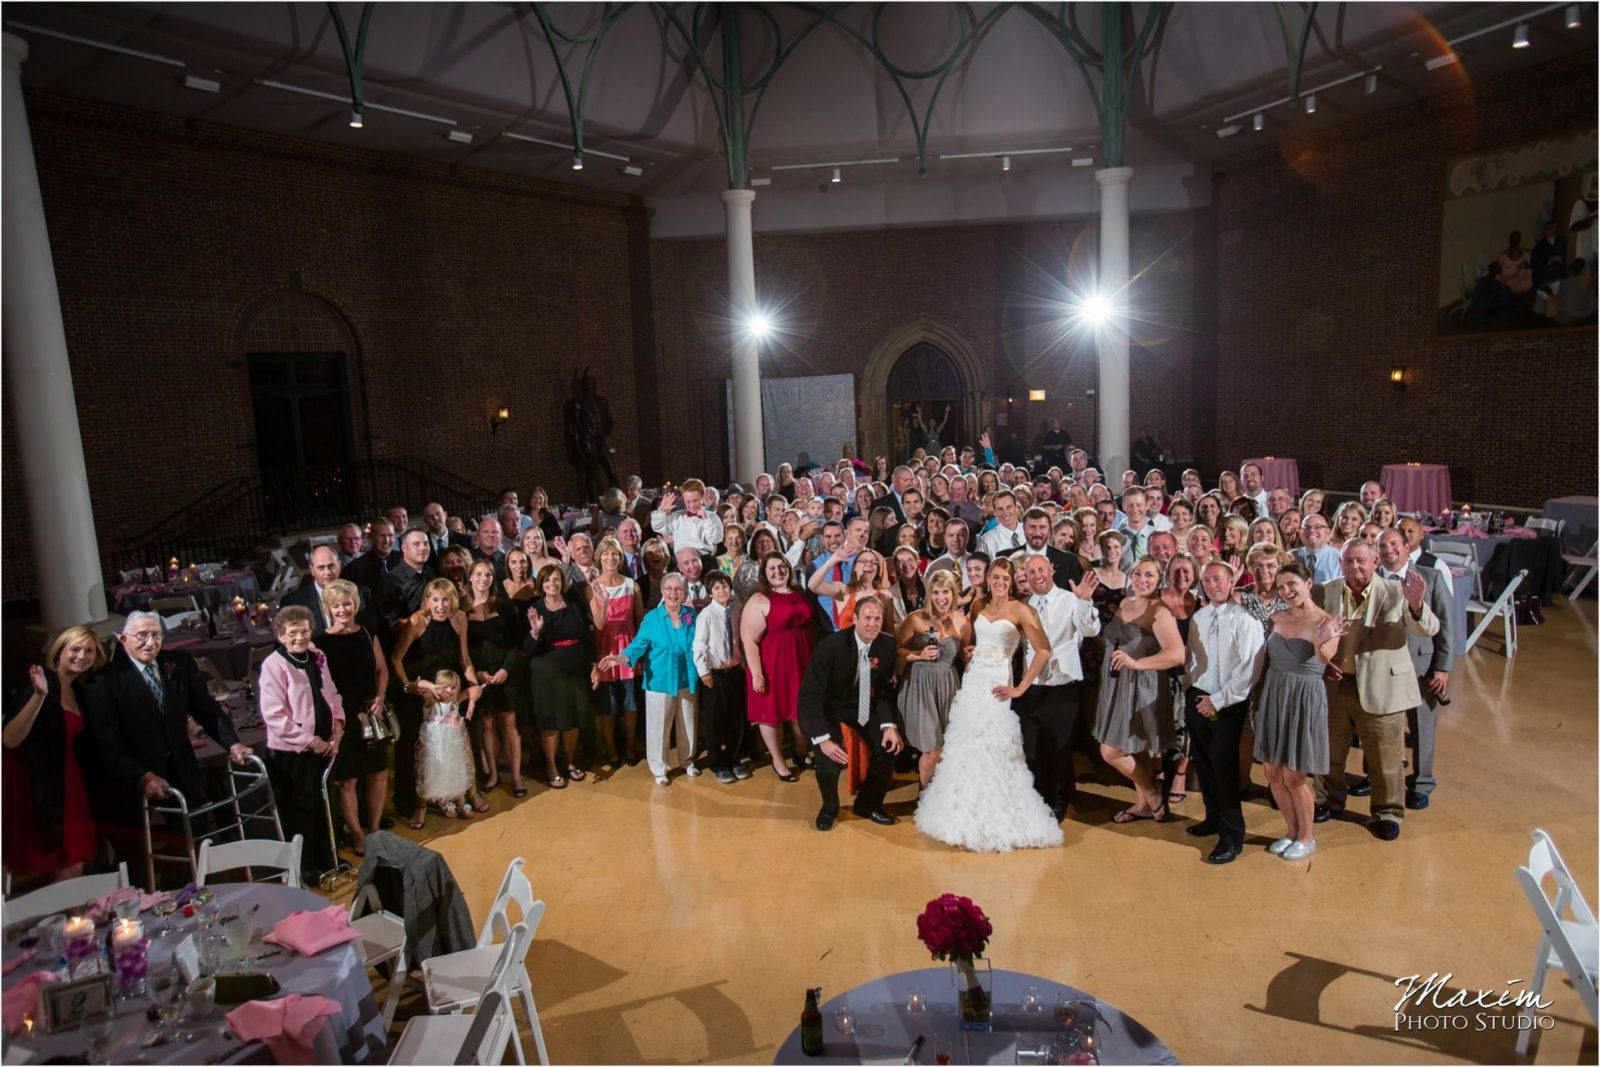 Dayton Art Institute Wedding Reception Group Photo